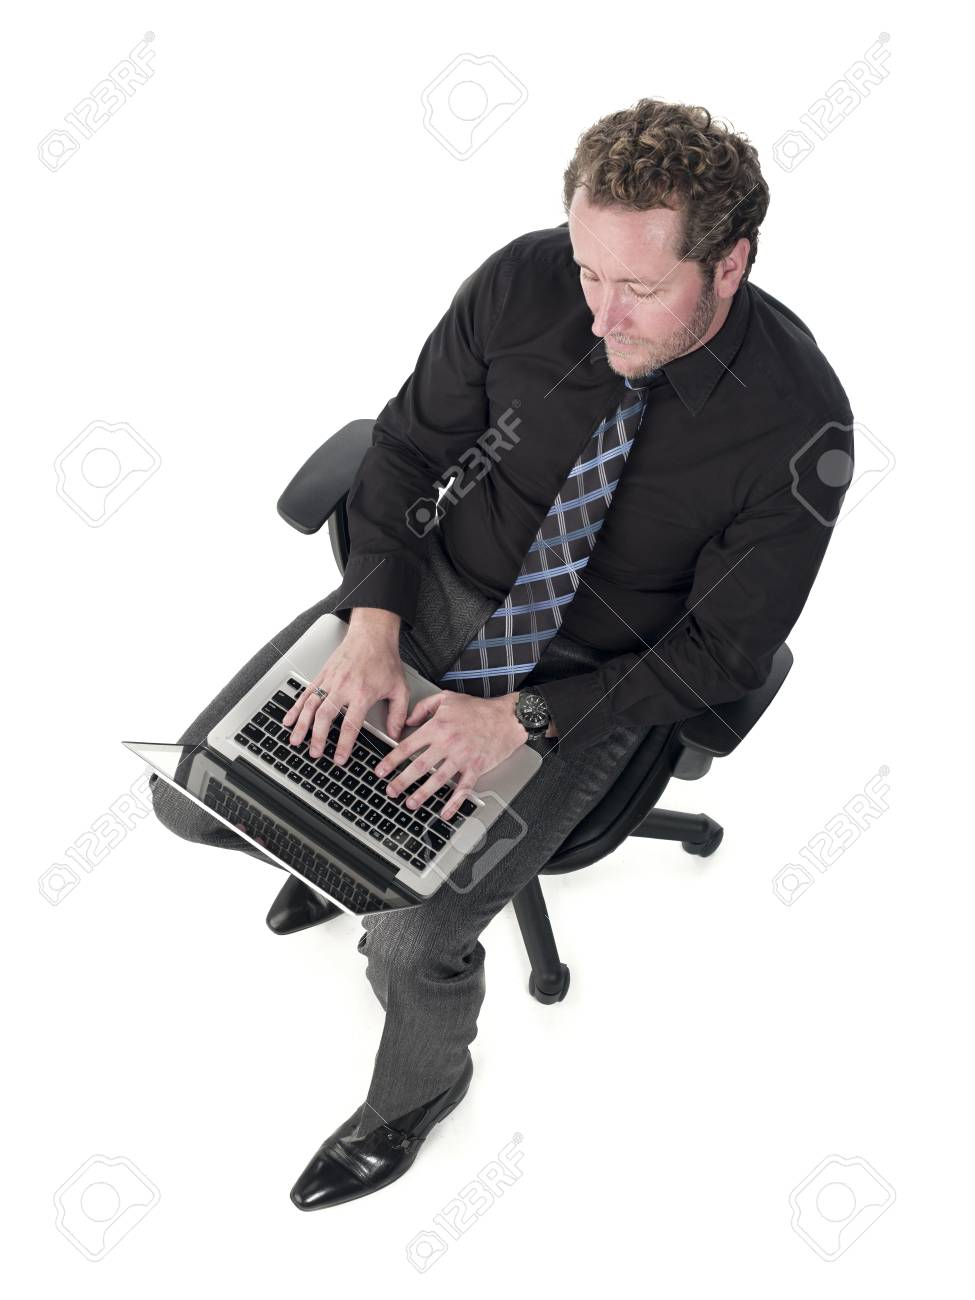 Doctor working on a laptop over white background, Model: Derek Gerhardt Stock Photo - 17244324